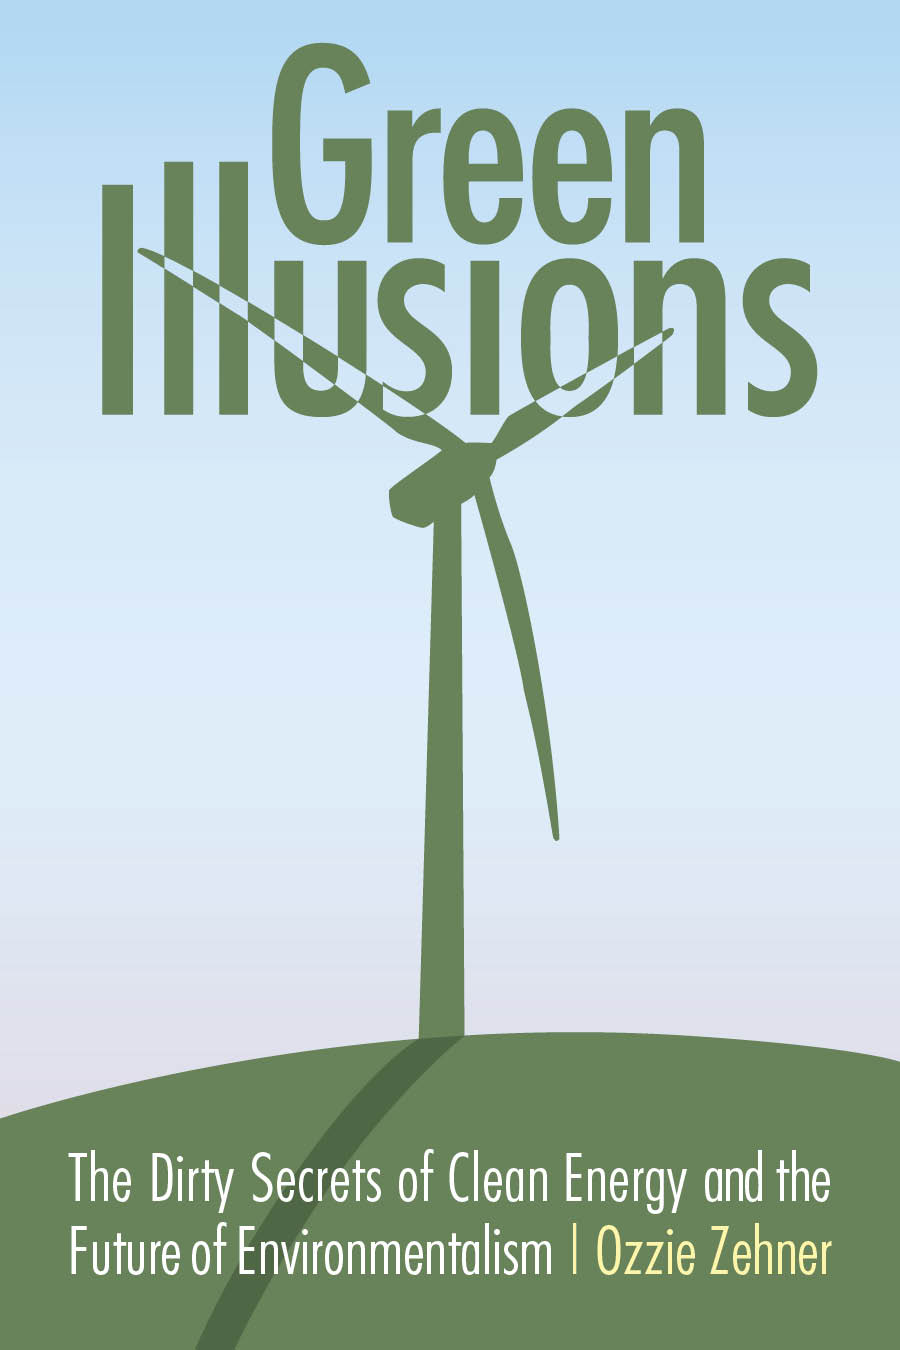 https://i2.wp.com/www.greenillusions.org/wp-content/uploads/2011/09/Cover-Green-Illusions.jpg